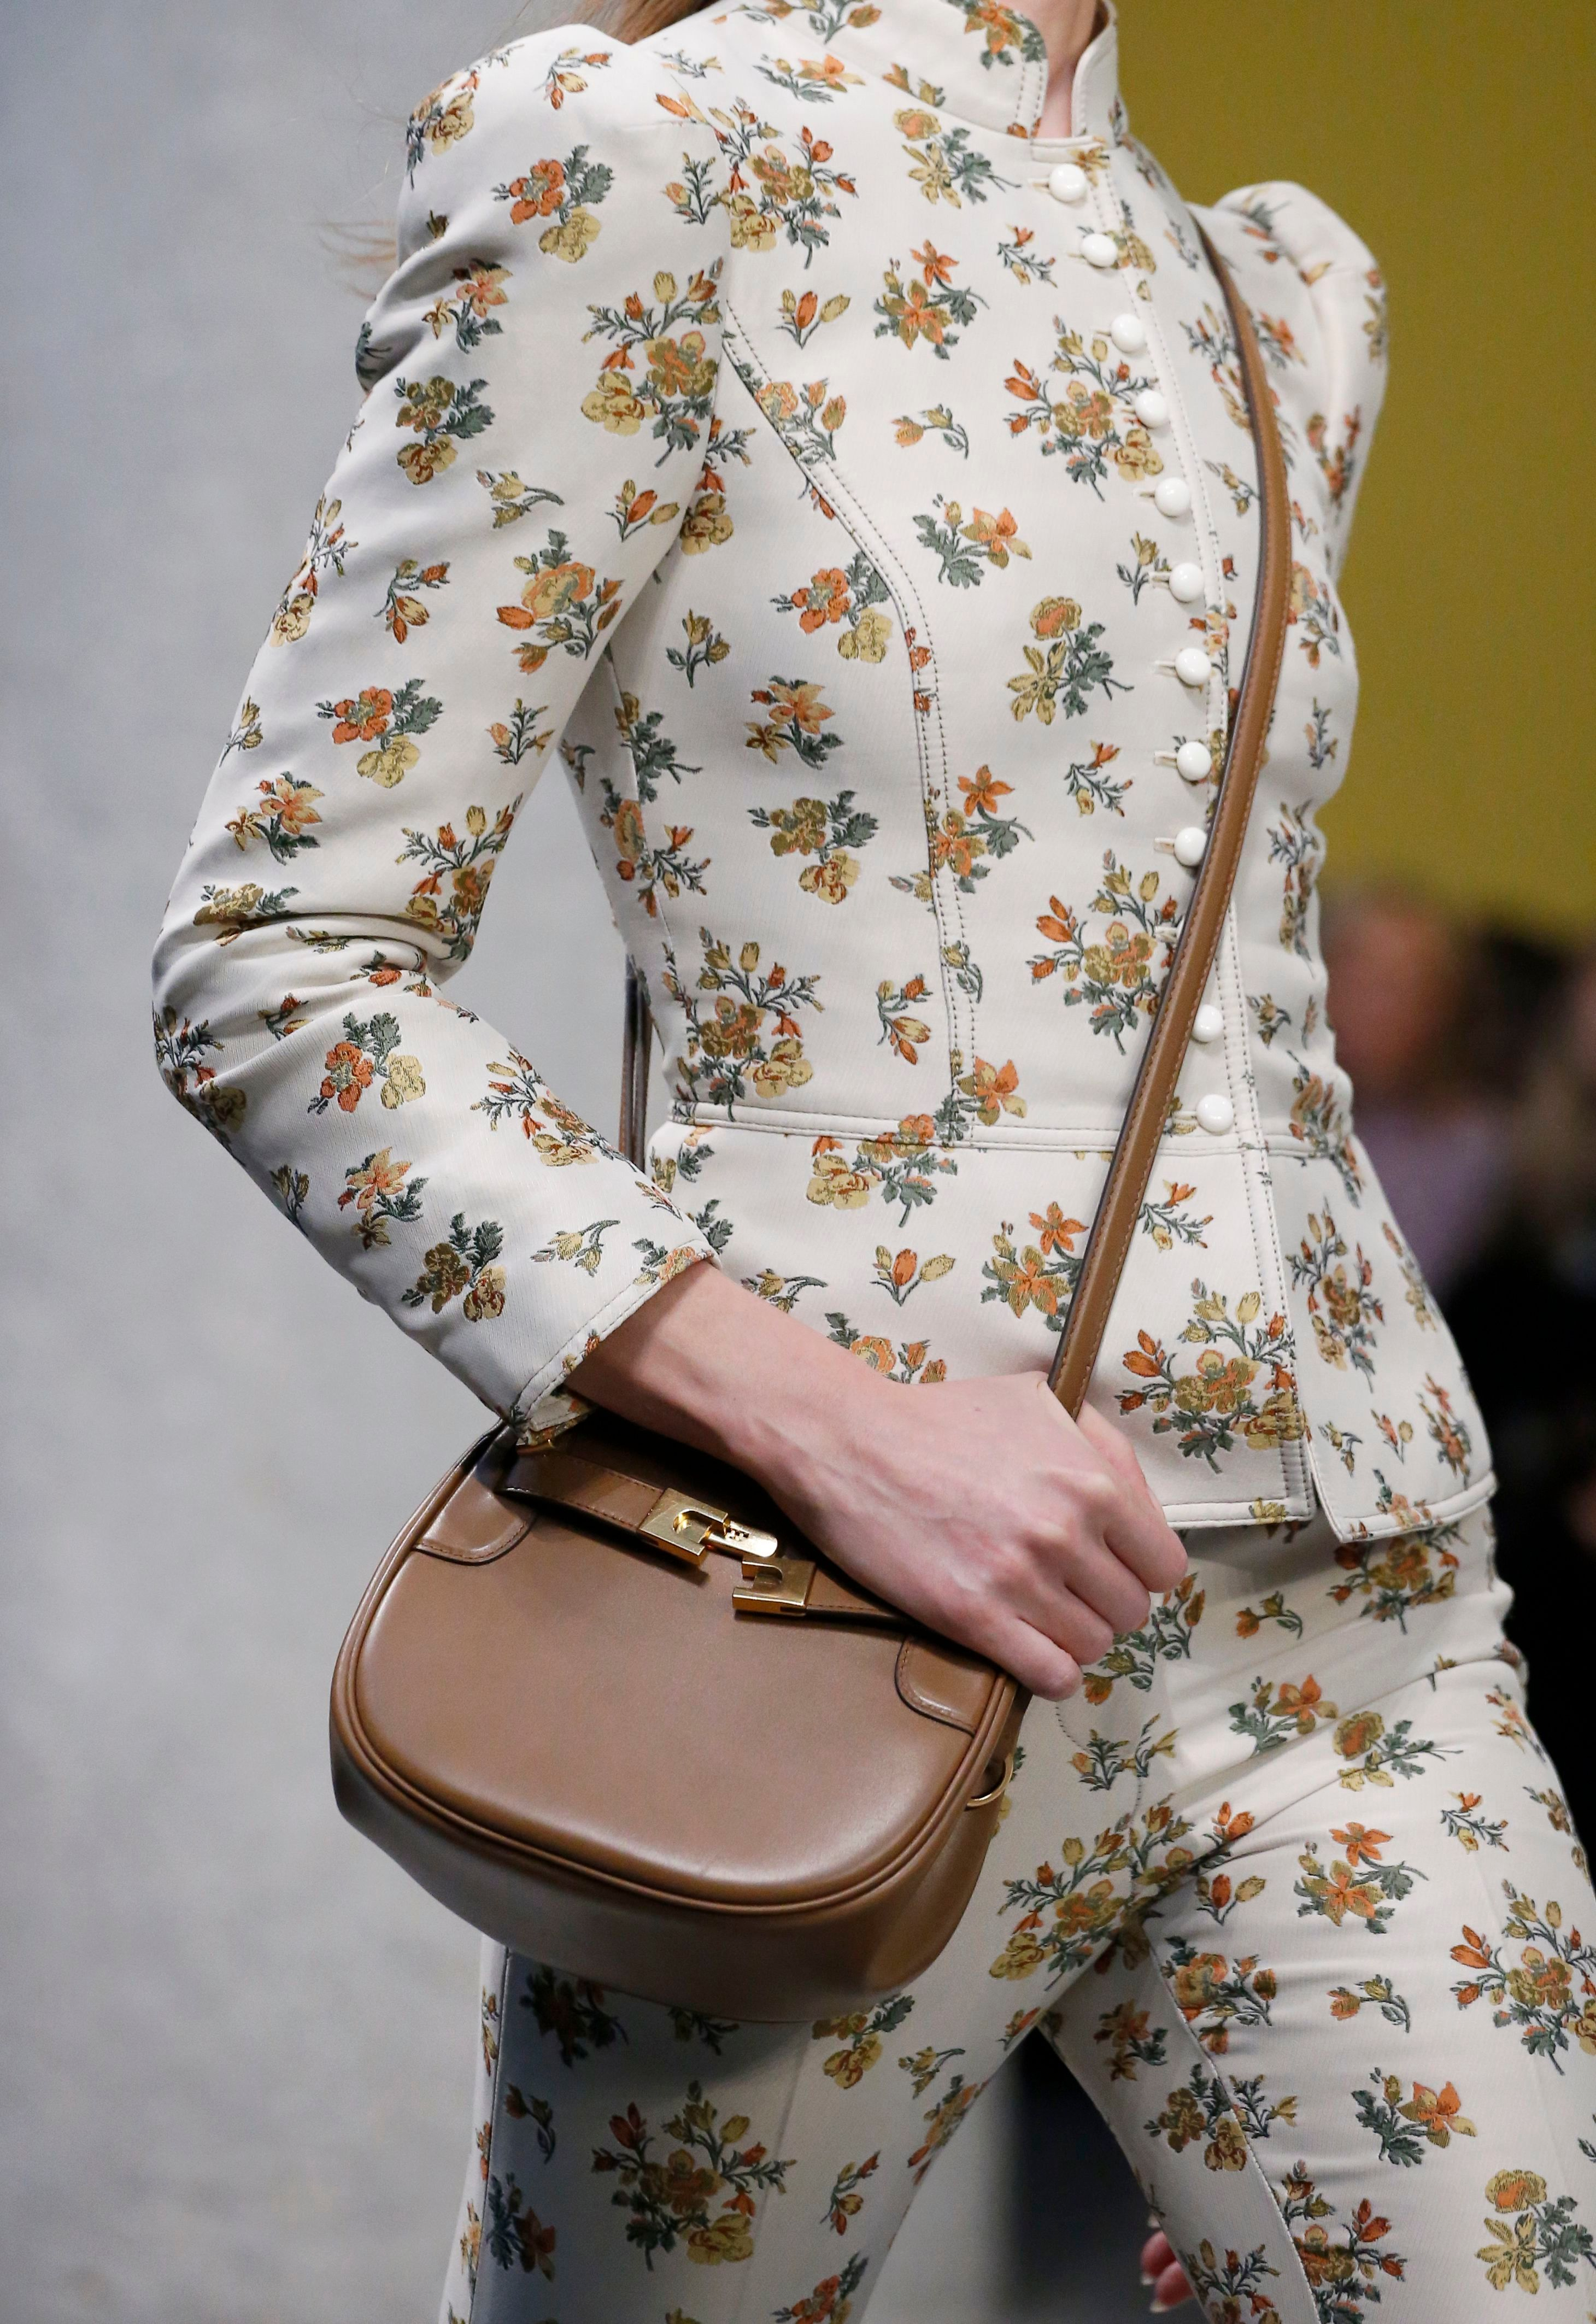 Details at Tory Burch RTW Fall 2020